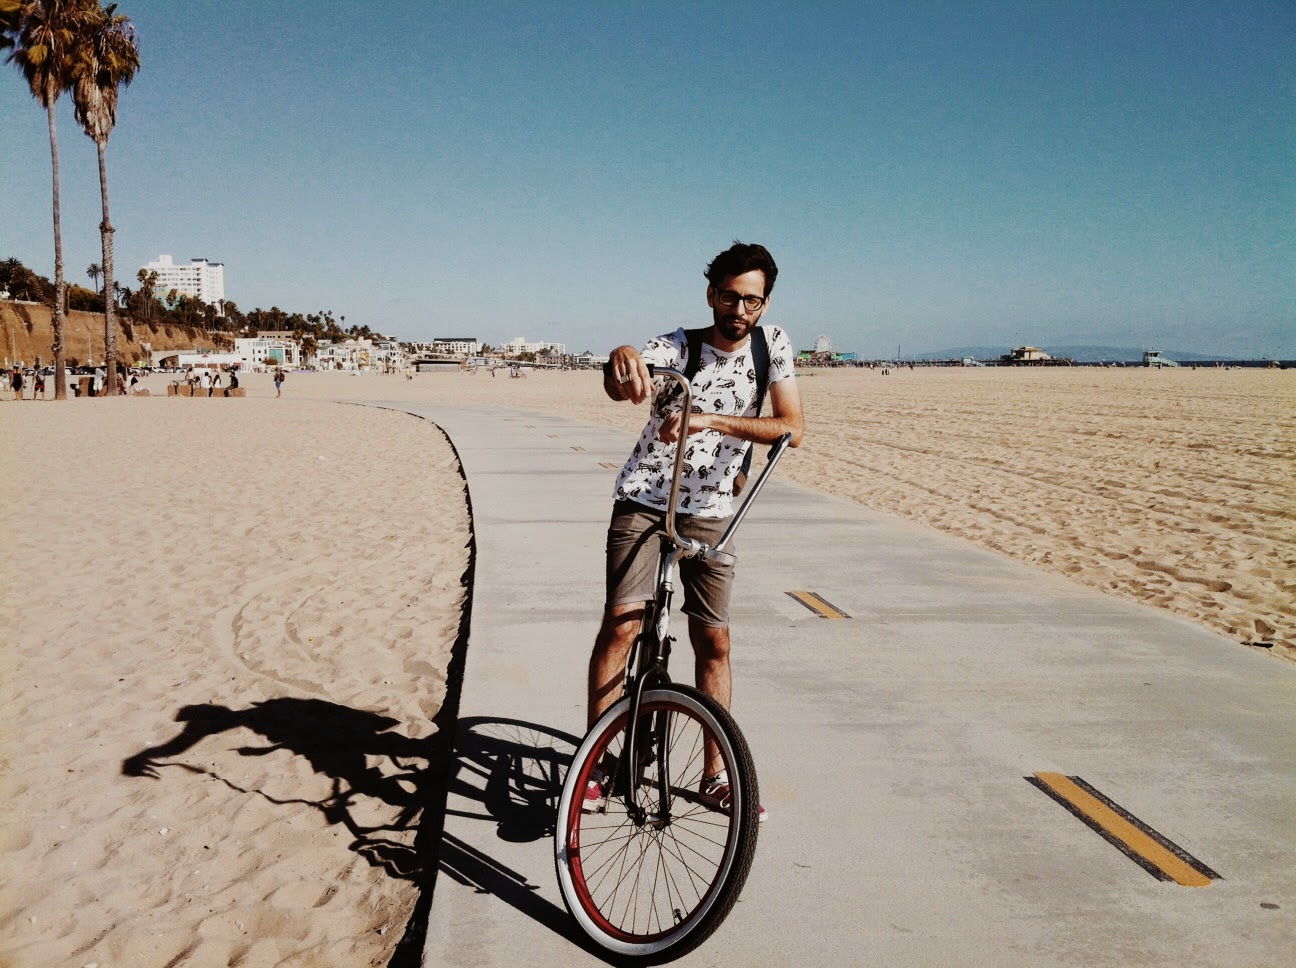 Summer bike ride with californian style vibe, Santa Monica LA